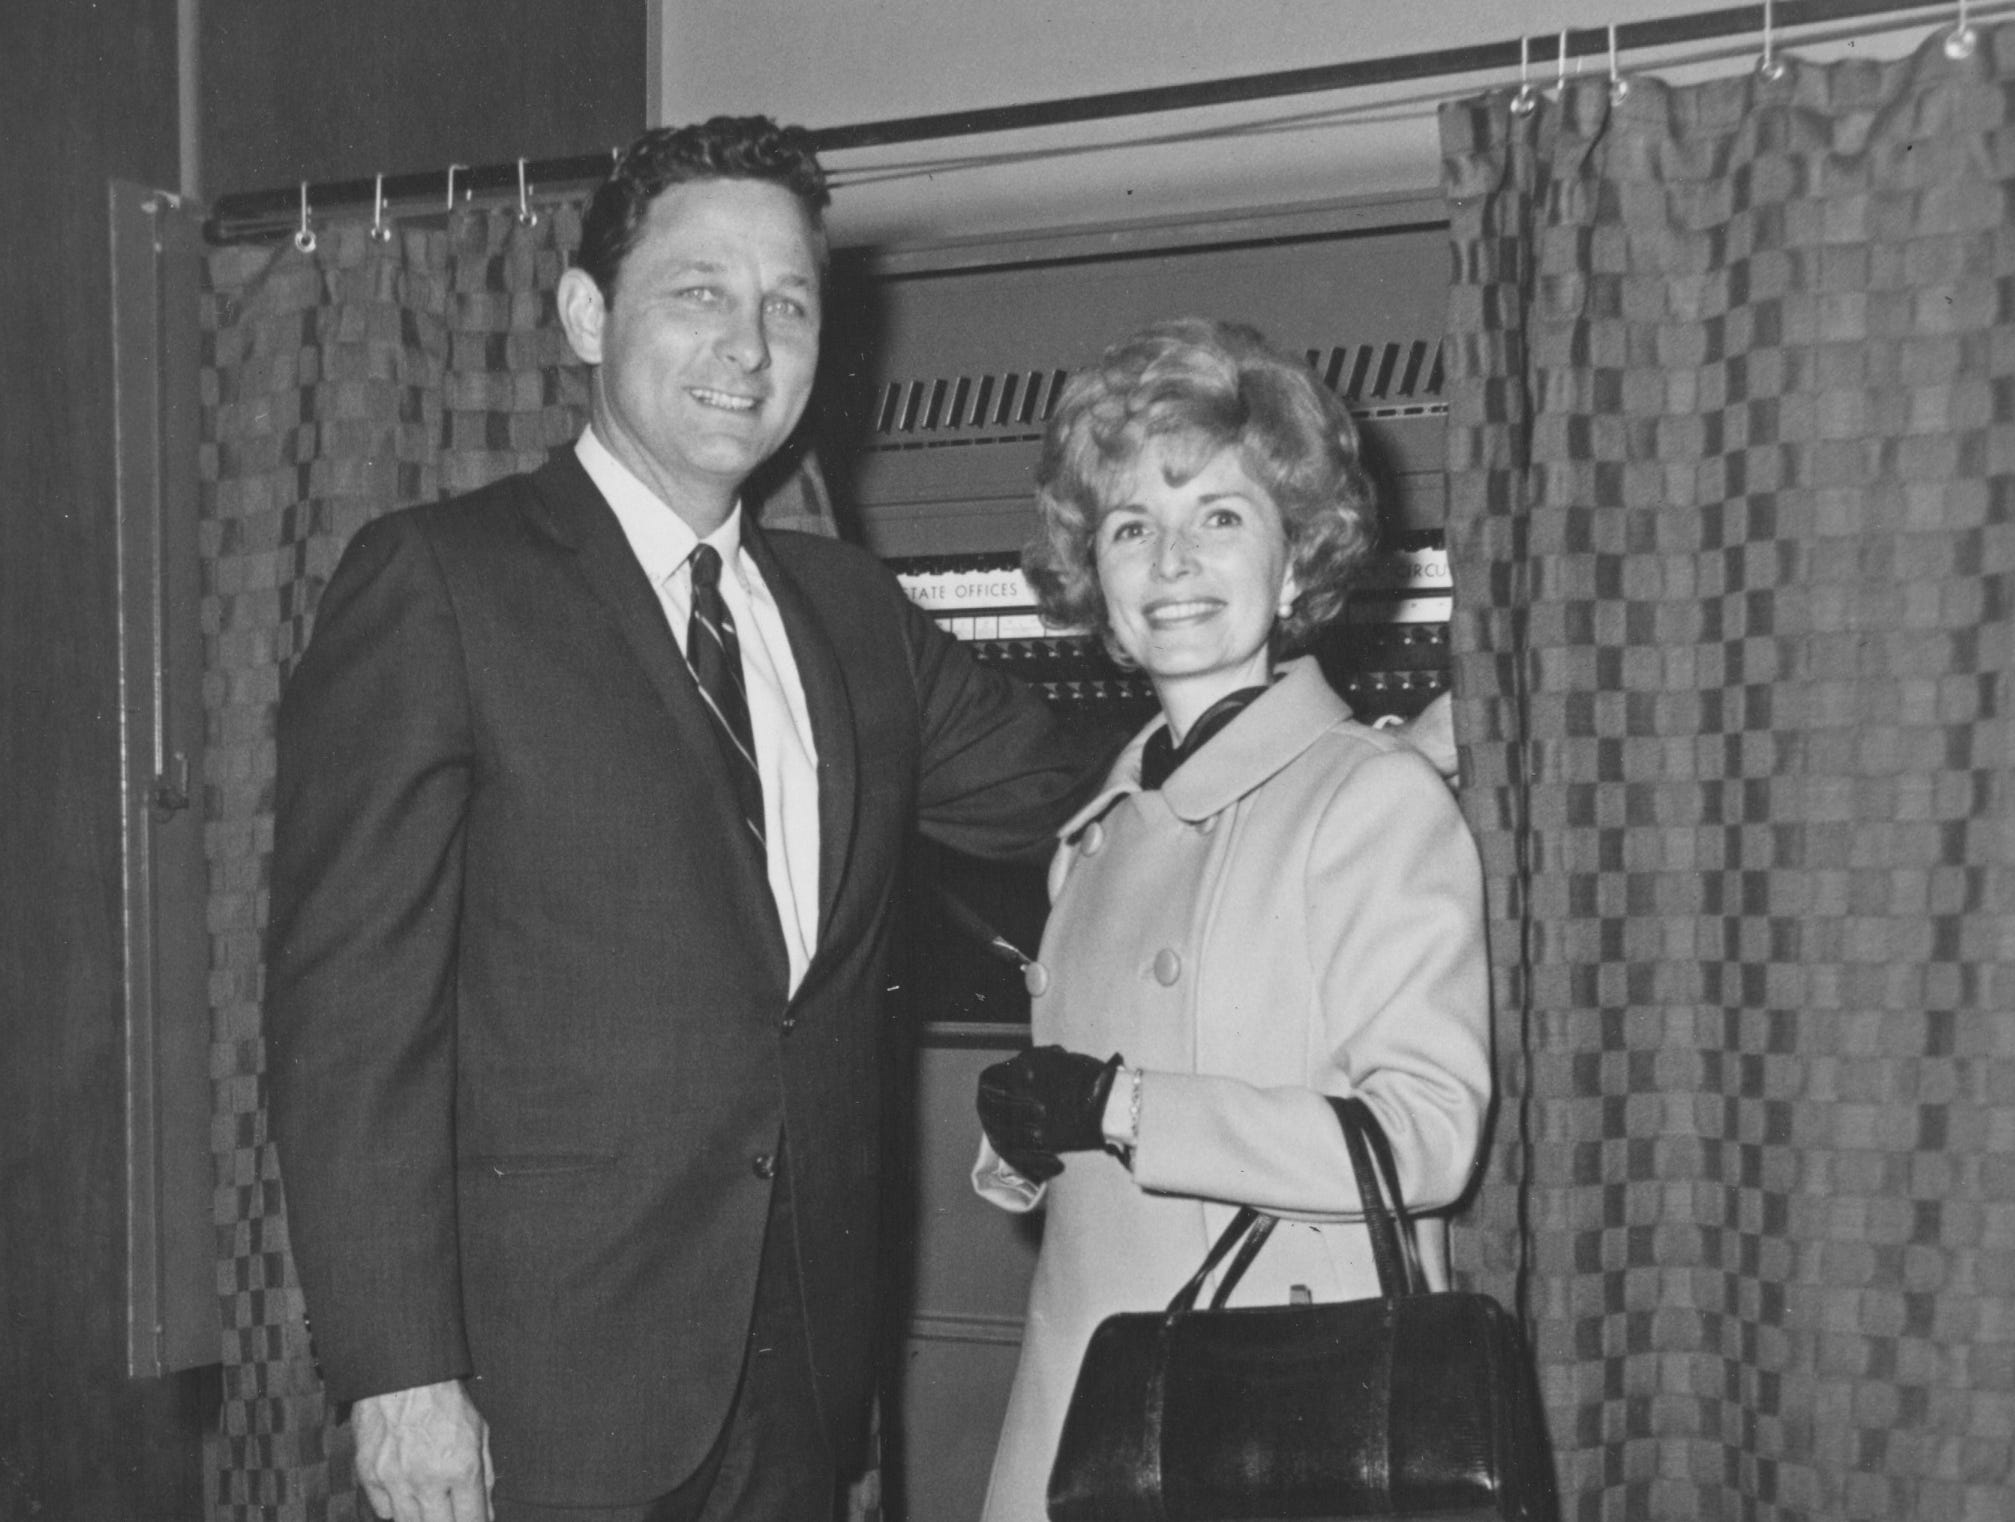 Indiana Senator Birch Bayh and wife, Marvella prepare to enter voting machine booth in Fayette Township, New Goshen, near the senators farm in Shirkieville Indiana. Senator and Mrs. Bayh motored to the West-central community early Tuesday morning from Indianapolis to cast their votes, later they return to the capitol city to await the outcome of the election. (11/05/1968)